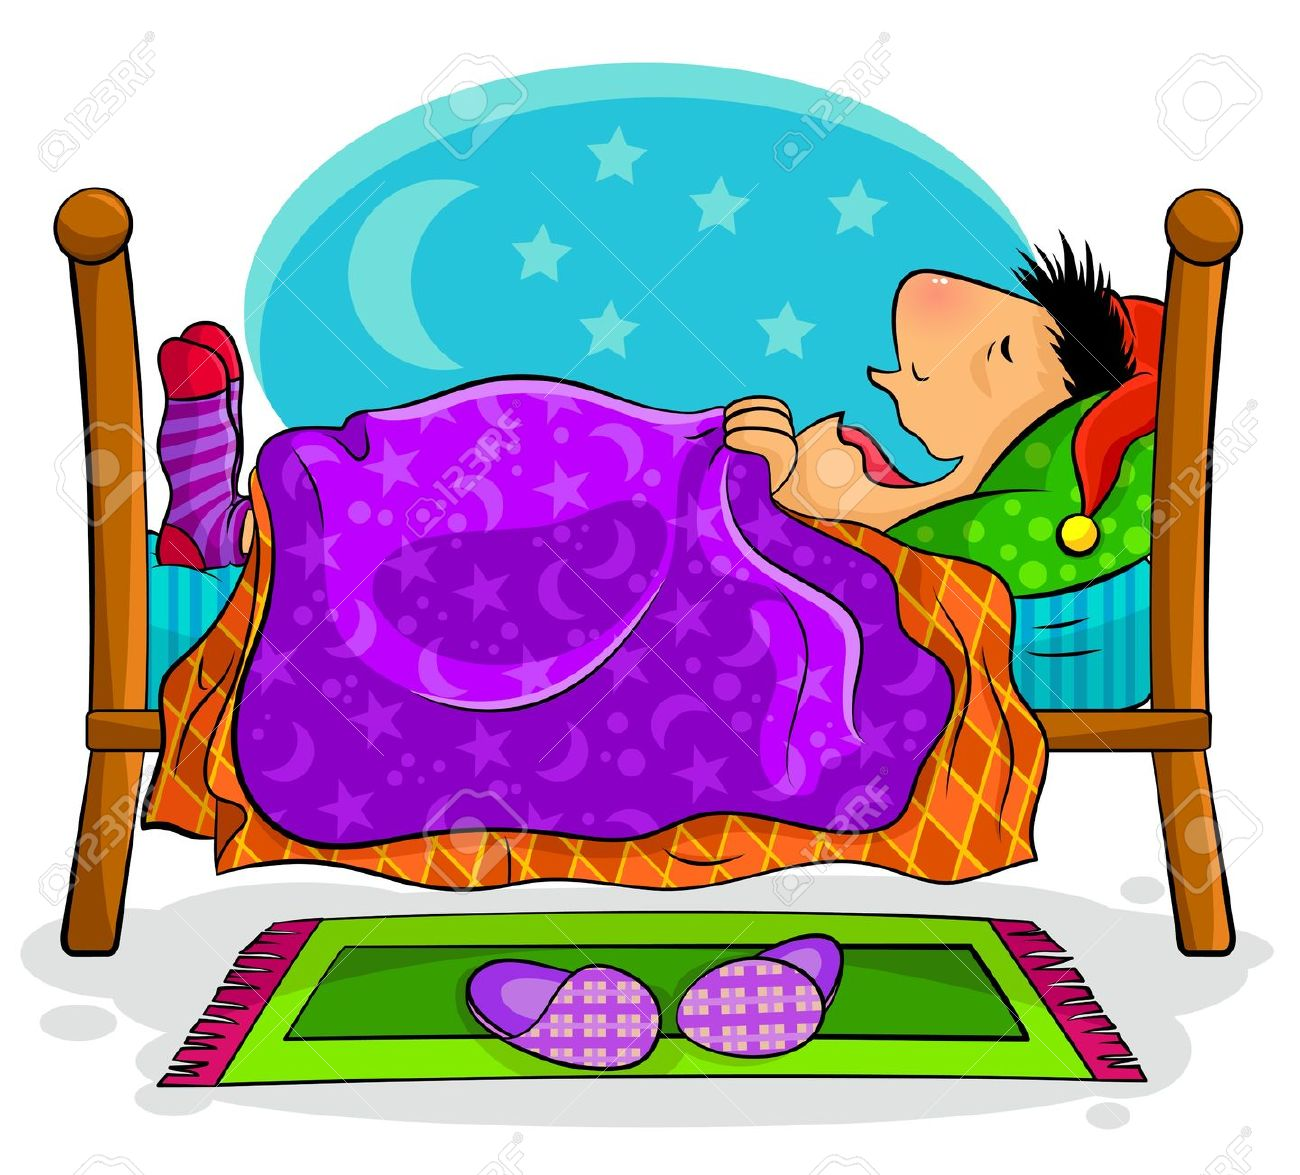 Old Woman And Man Asleep In Bed Clipart - Clipground-5065